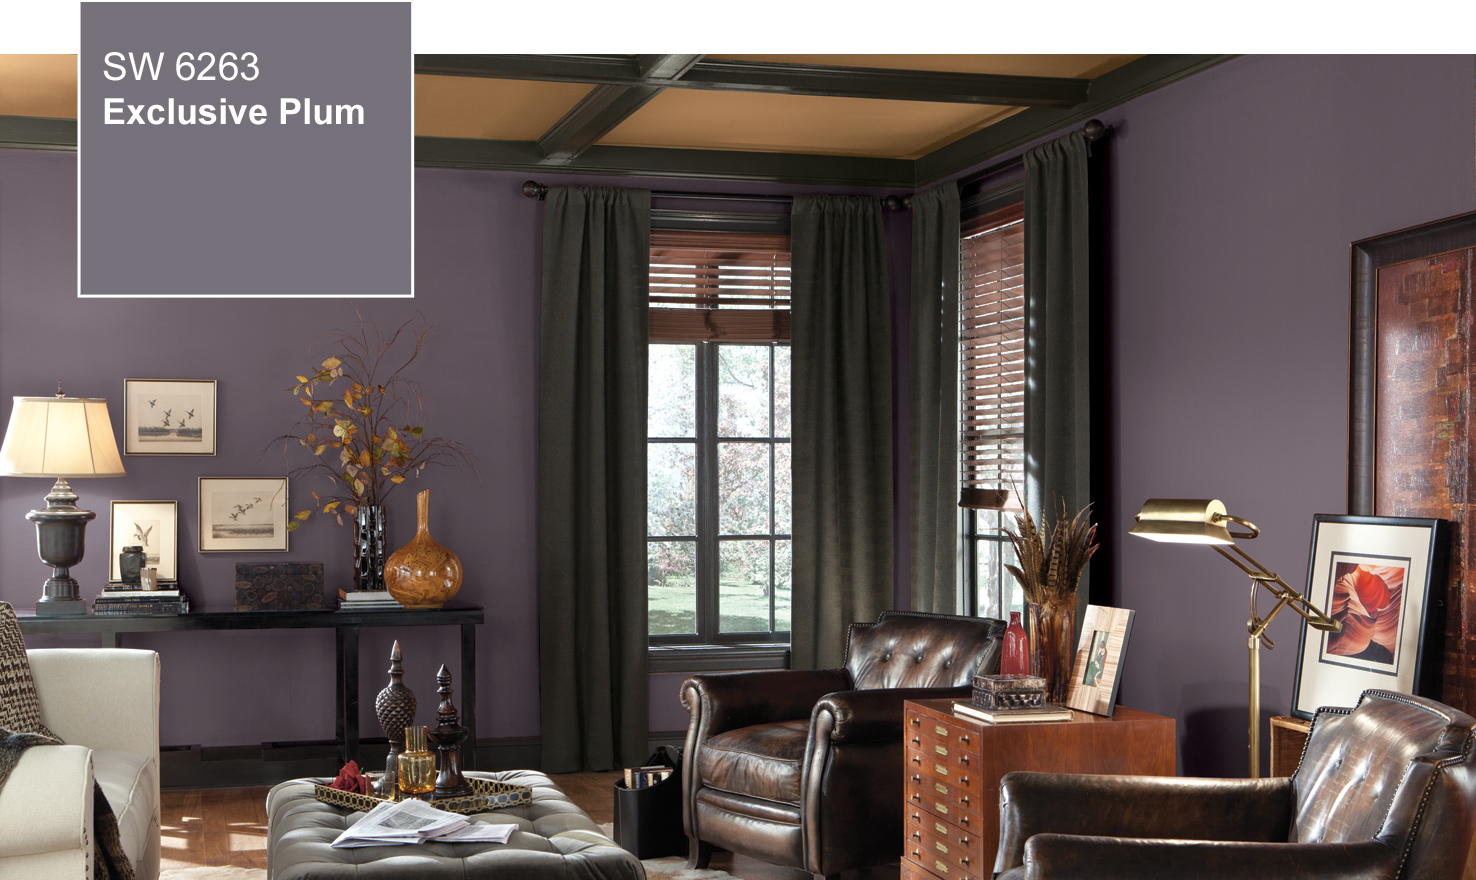 2014 color of the year exclusive plum sw 6263 by for Exclusive plum bedroom